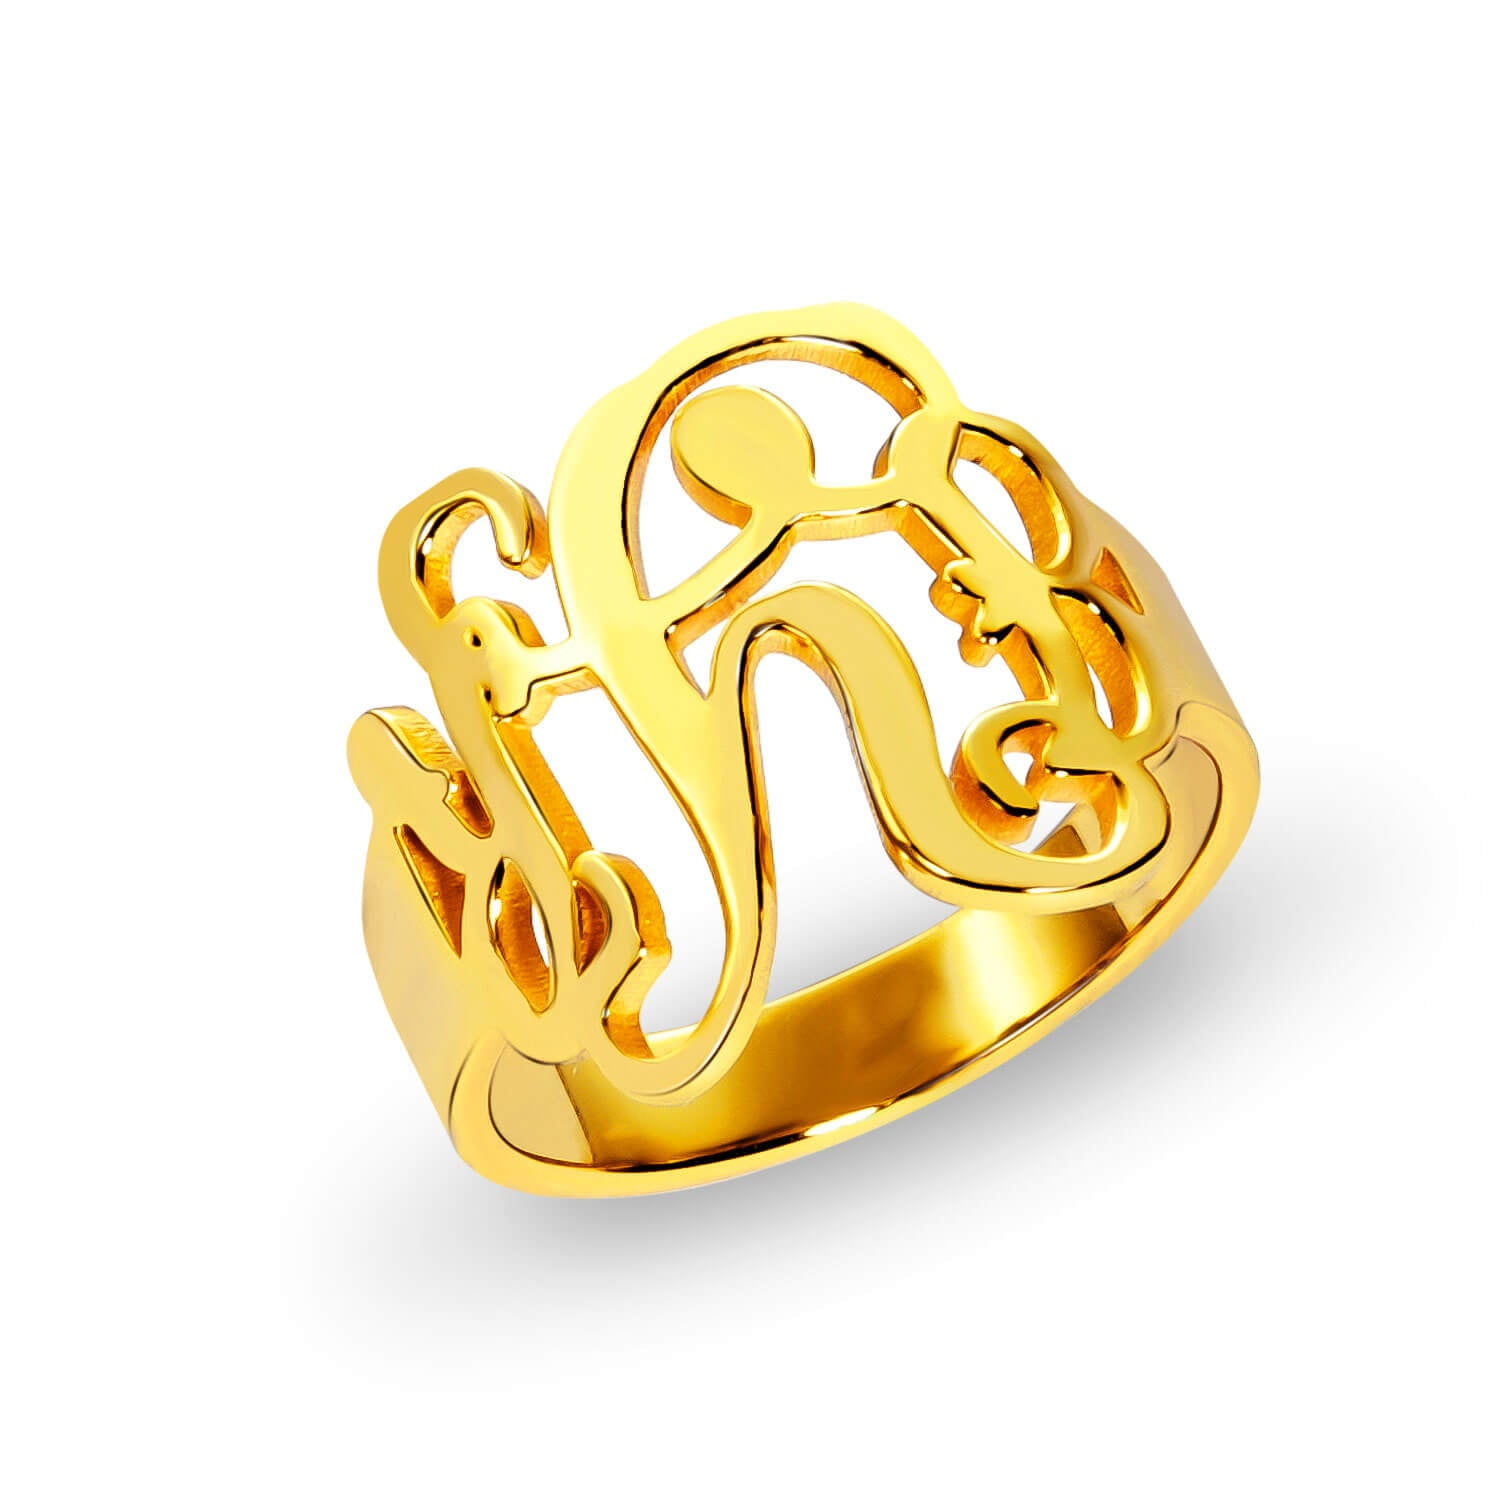 18K Gold Plated Personalized Script Monogram Signet Ring